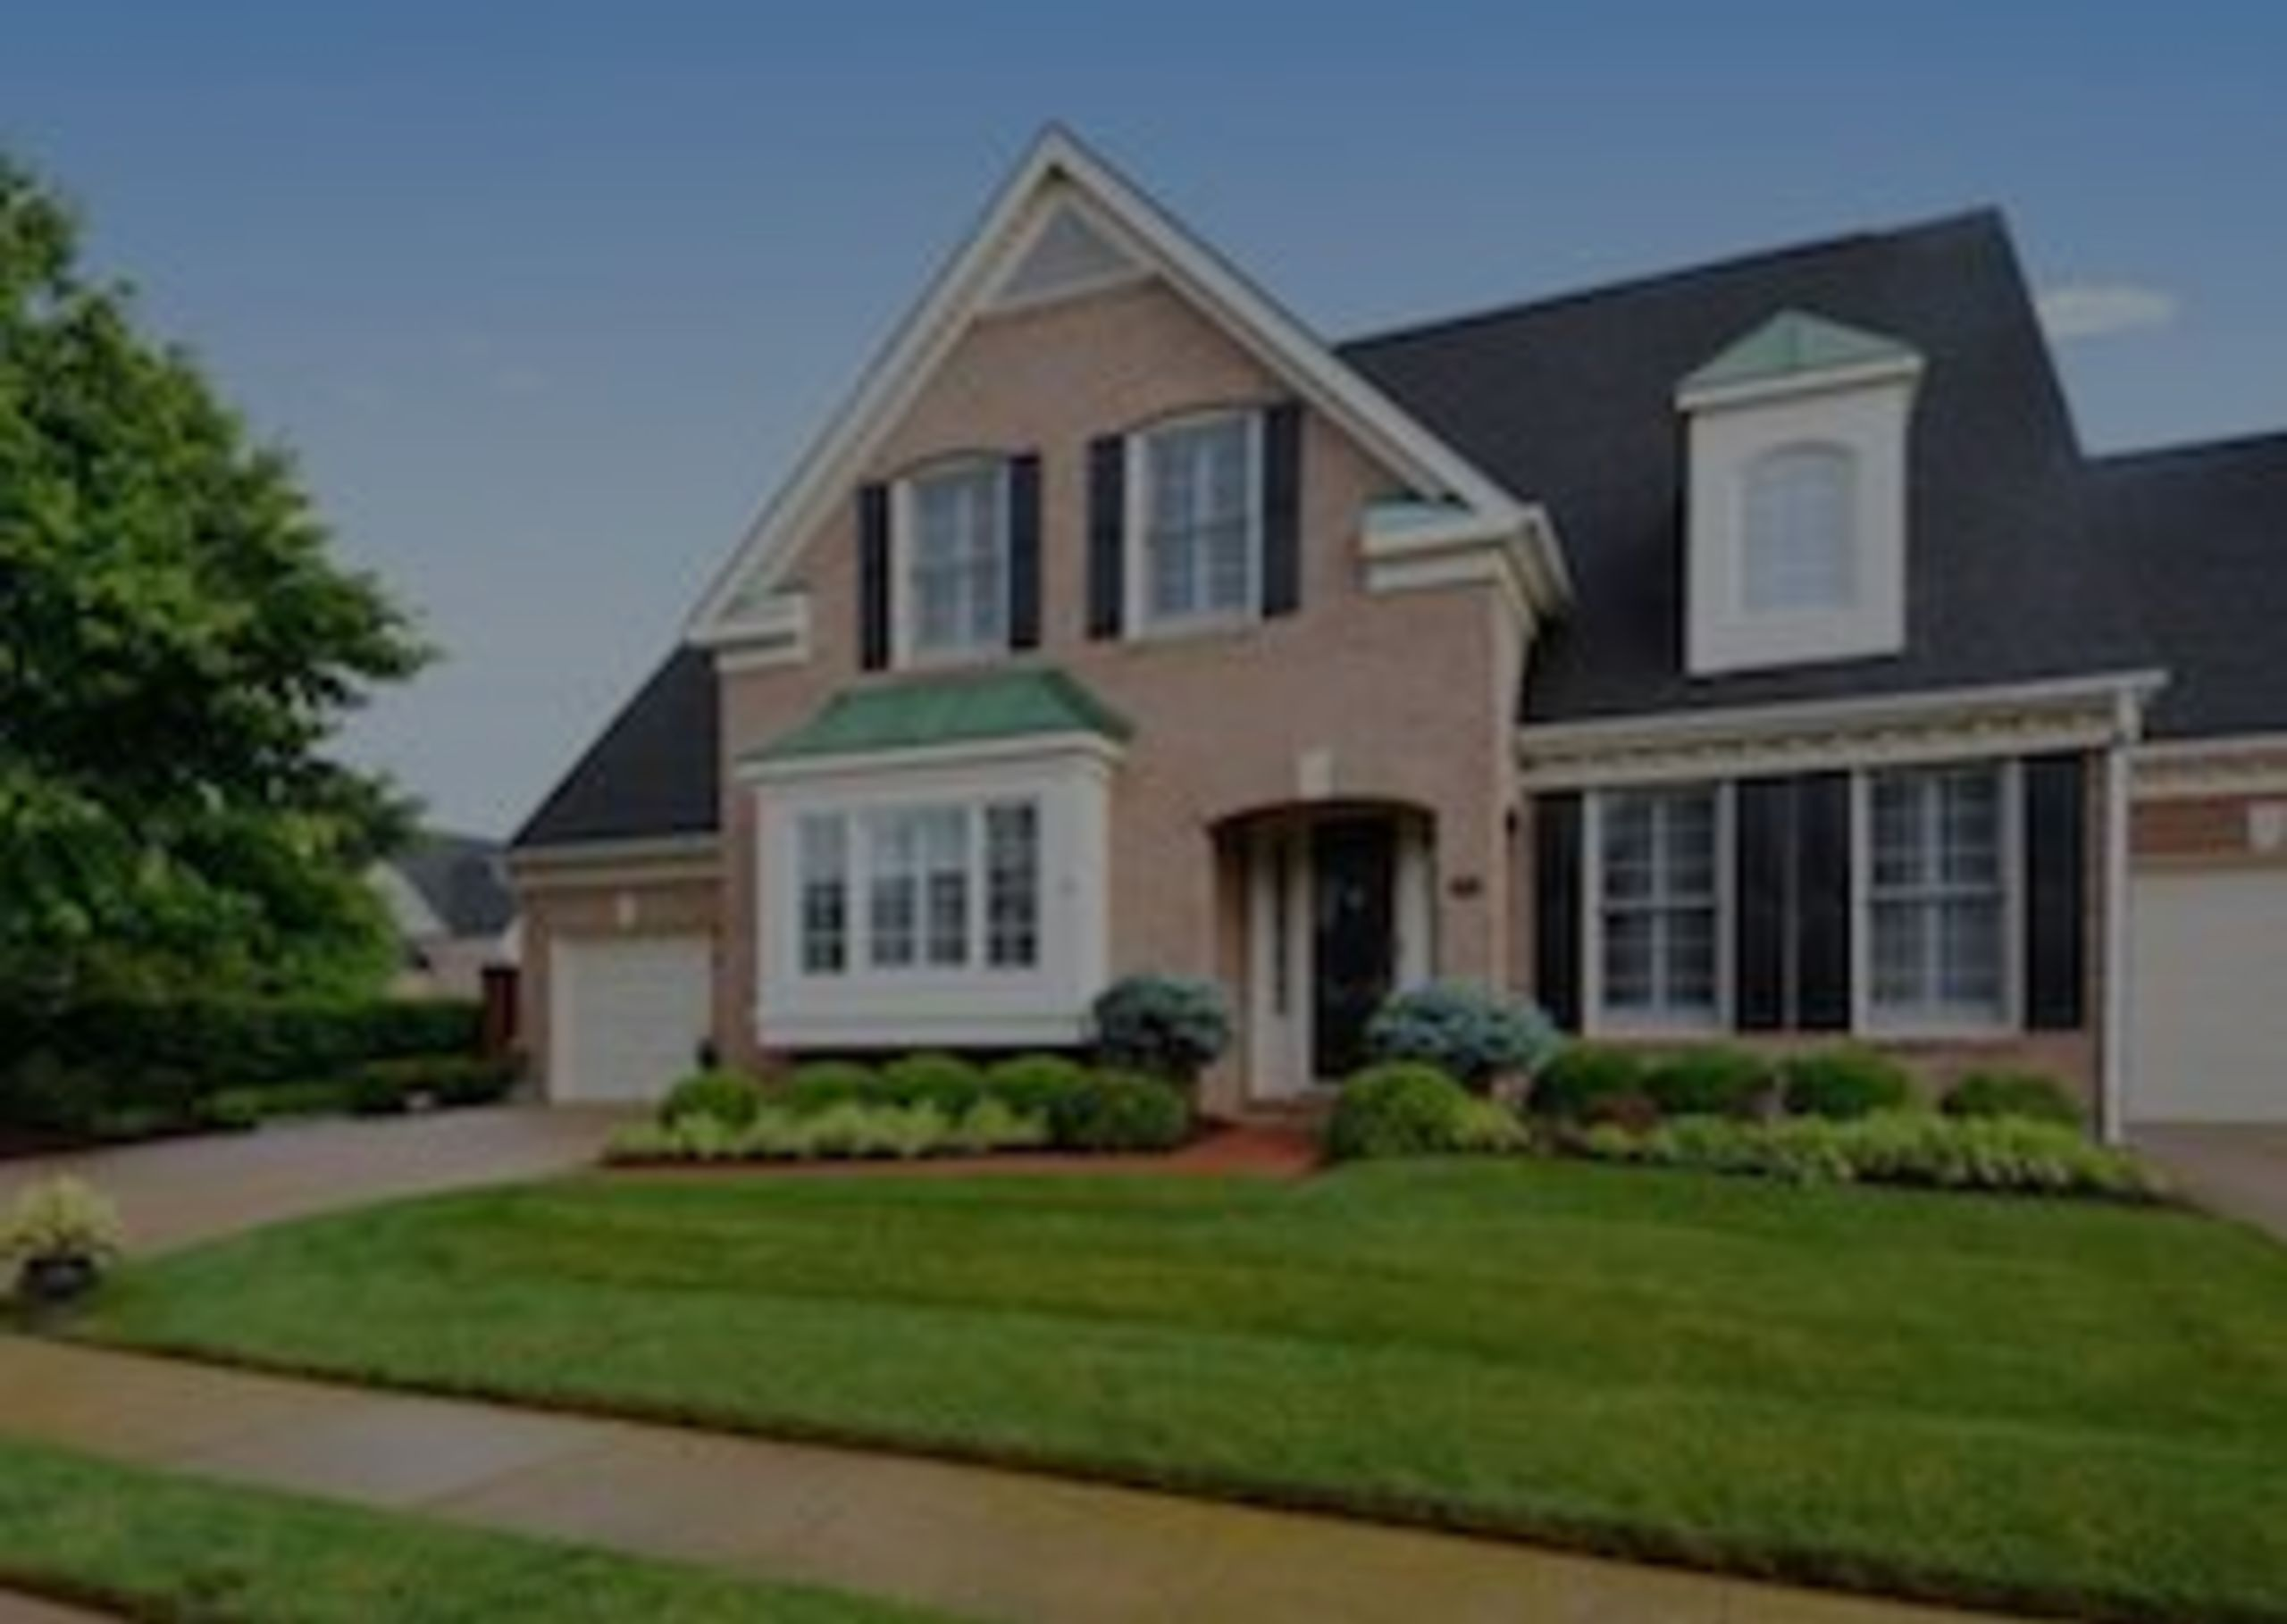 JUST LISTED | 7 Properties in Clarke, Loudoun, & Fauquier